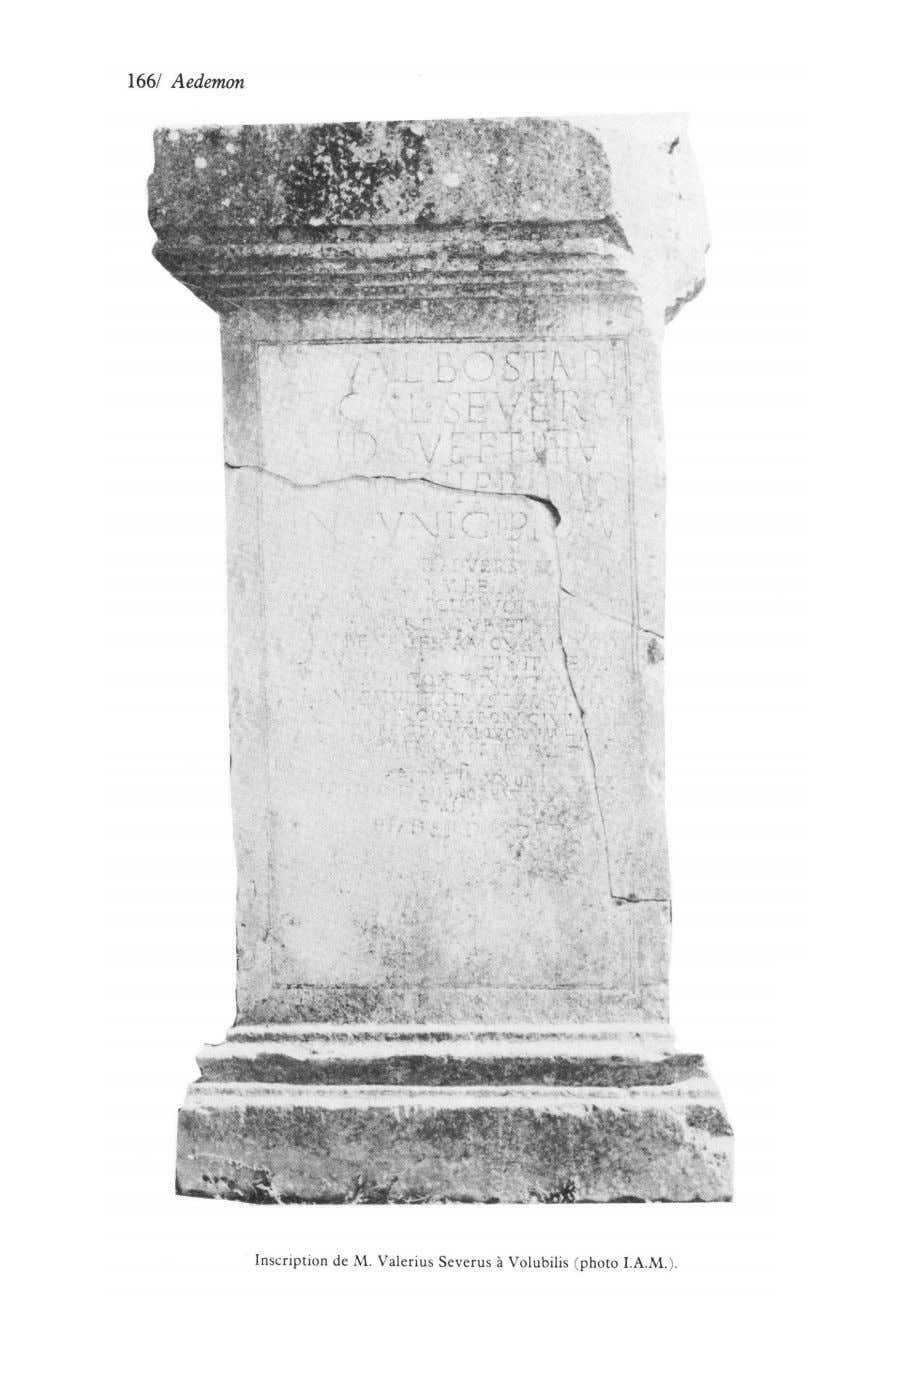 Inscription de M. Valerius Severus à Volubilis (photo I.A.M.).